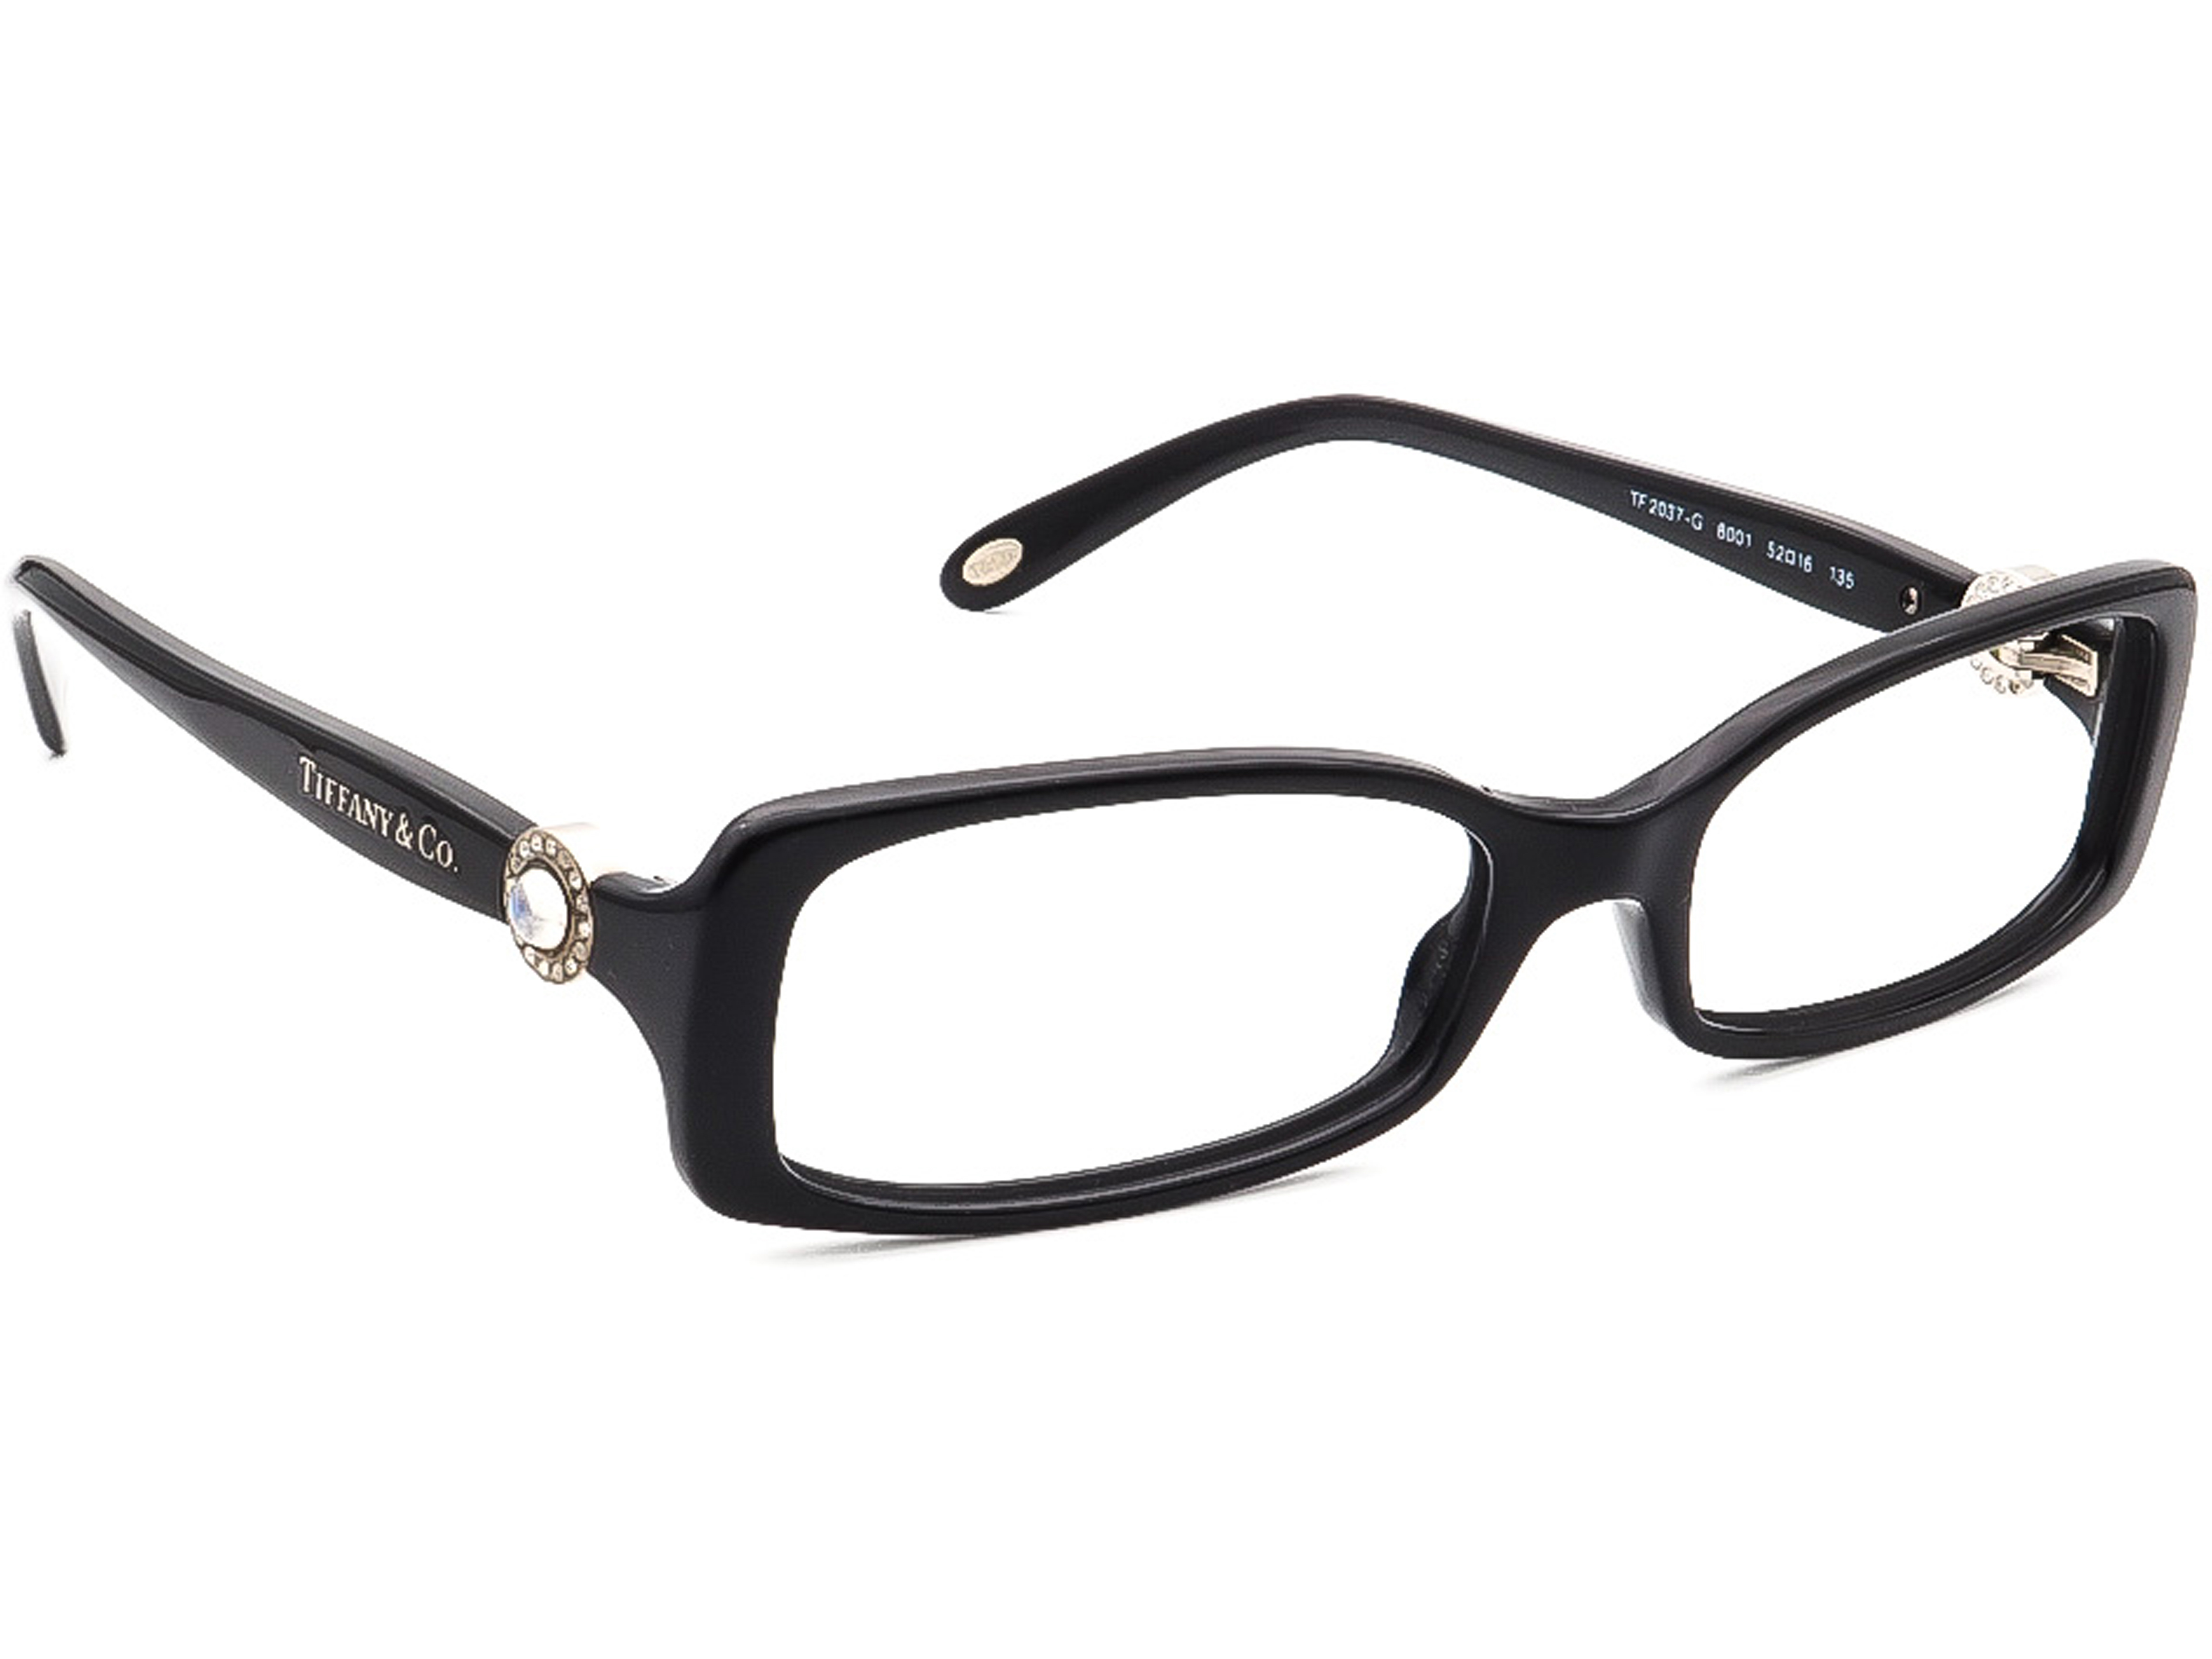 Tiffany & Co. TF 2037-G 8001 Eyeglasses